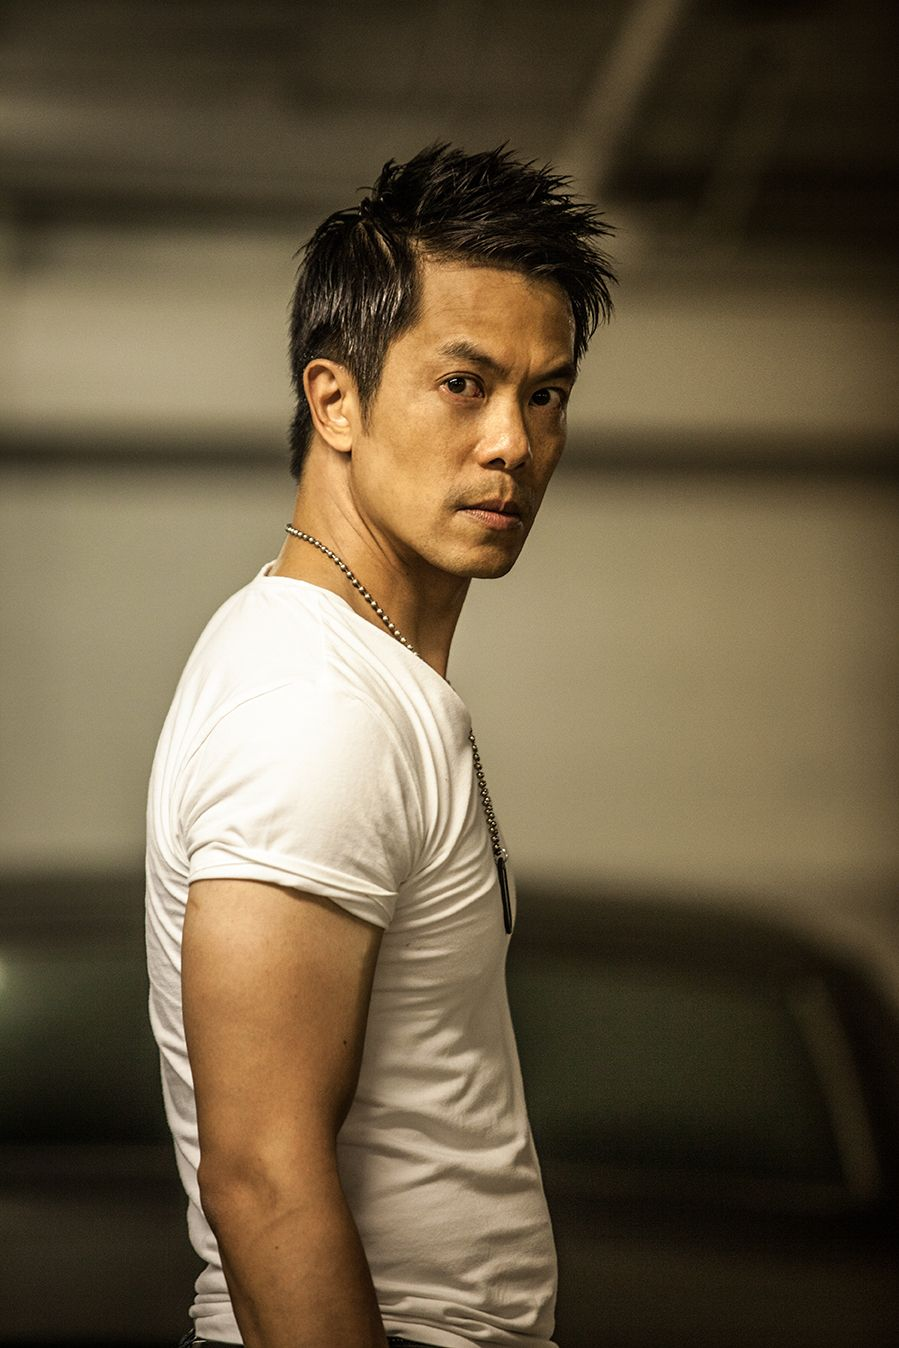 byron mann big shortbyron mann height, byron mann, байрон манн, byron mann arrow, byron mann biography, byron mann street fighter, байрон манн фильмы, байрон манн фильмография, byron mann interview, byron mann steven seagal, byron mann filmography, byron mann married, byron mann net worth, byron mann wife, byron mann imdb, byron mann ryu, byron mann twitter, byron mann big short, byron mann martial arts, byron mann girlfriend